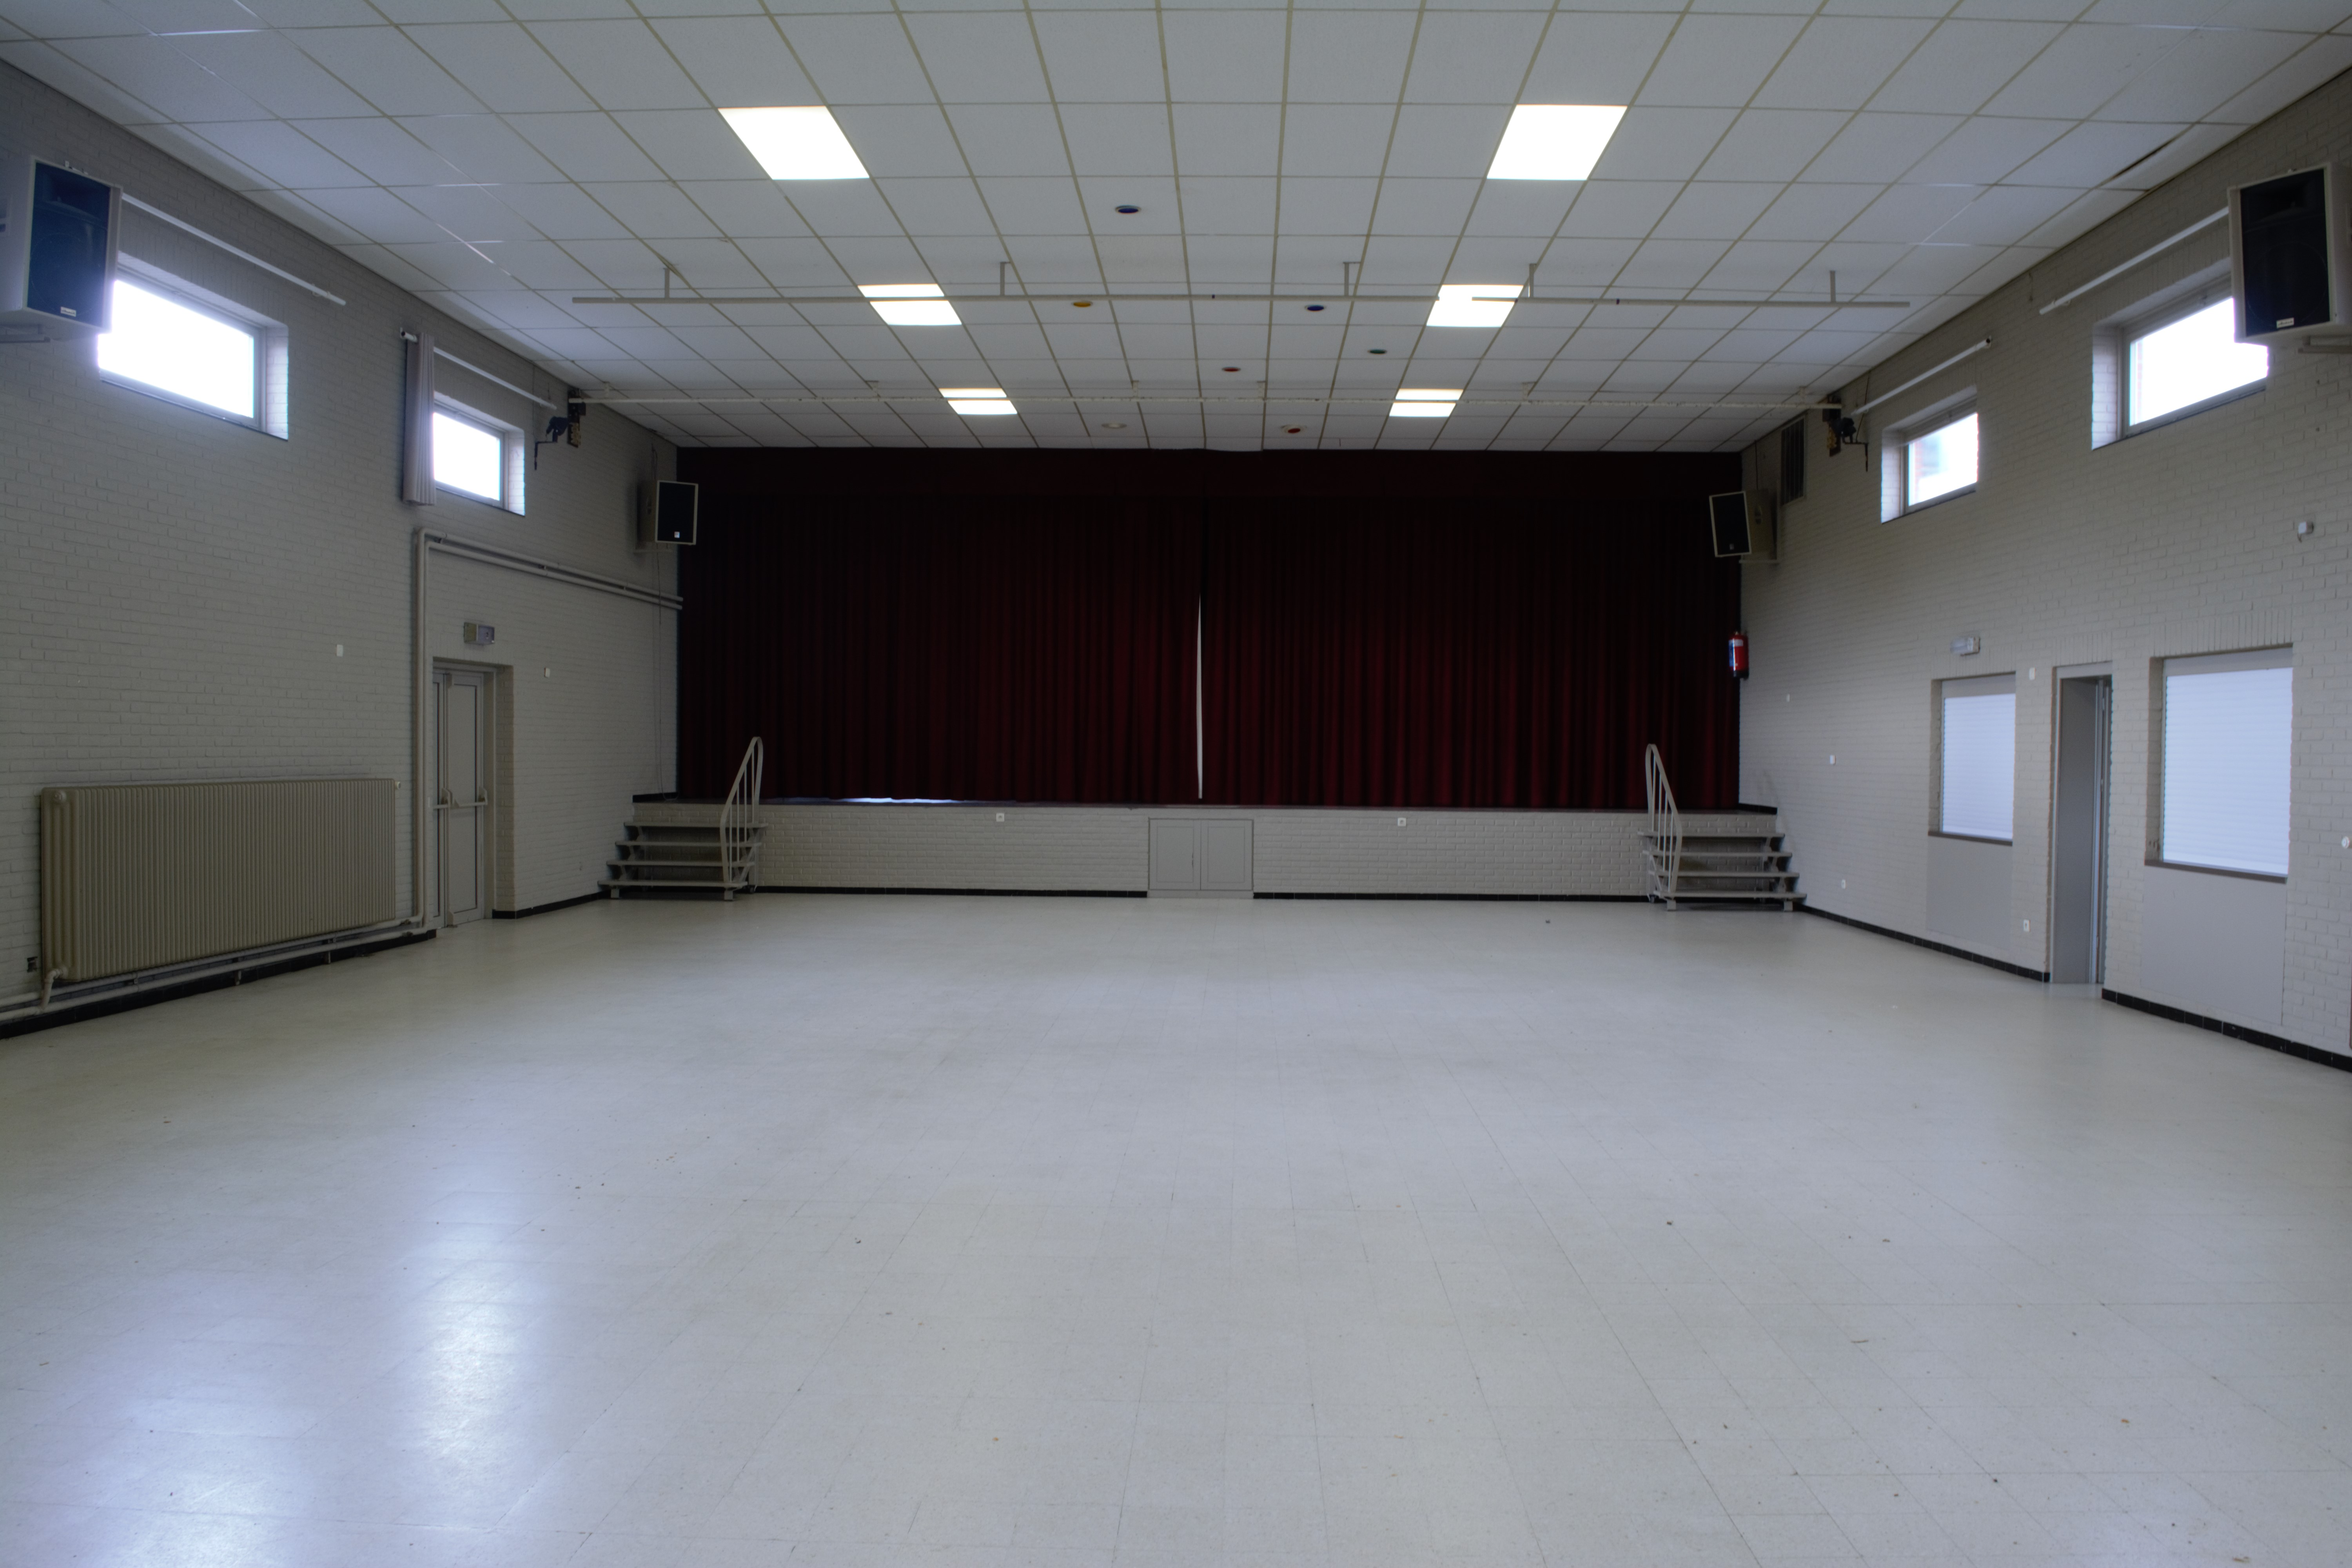 grote zaal 5